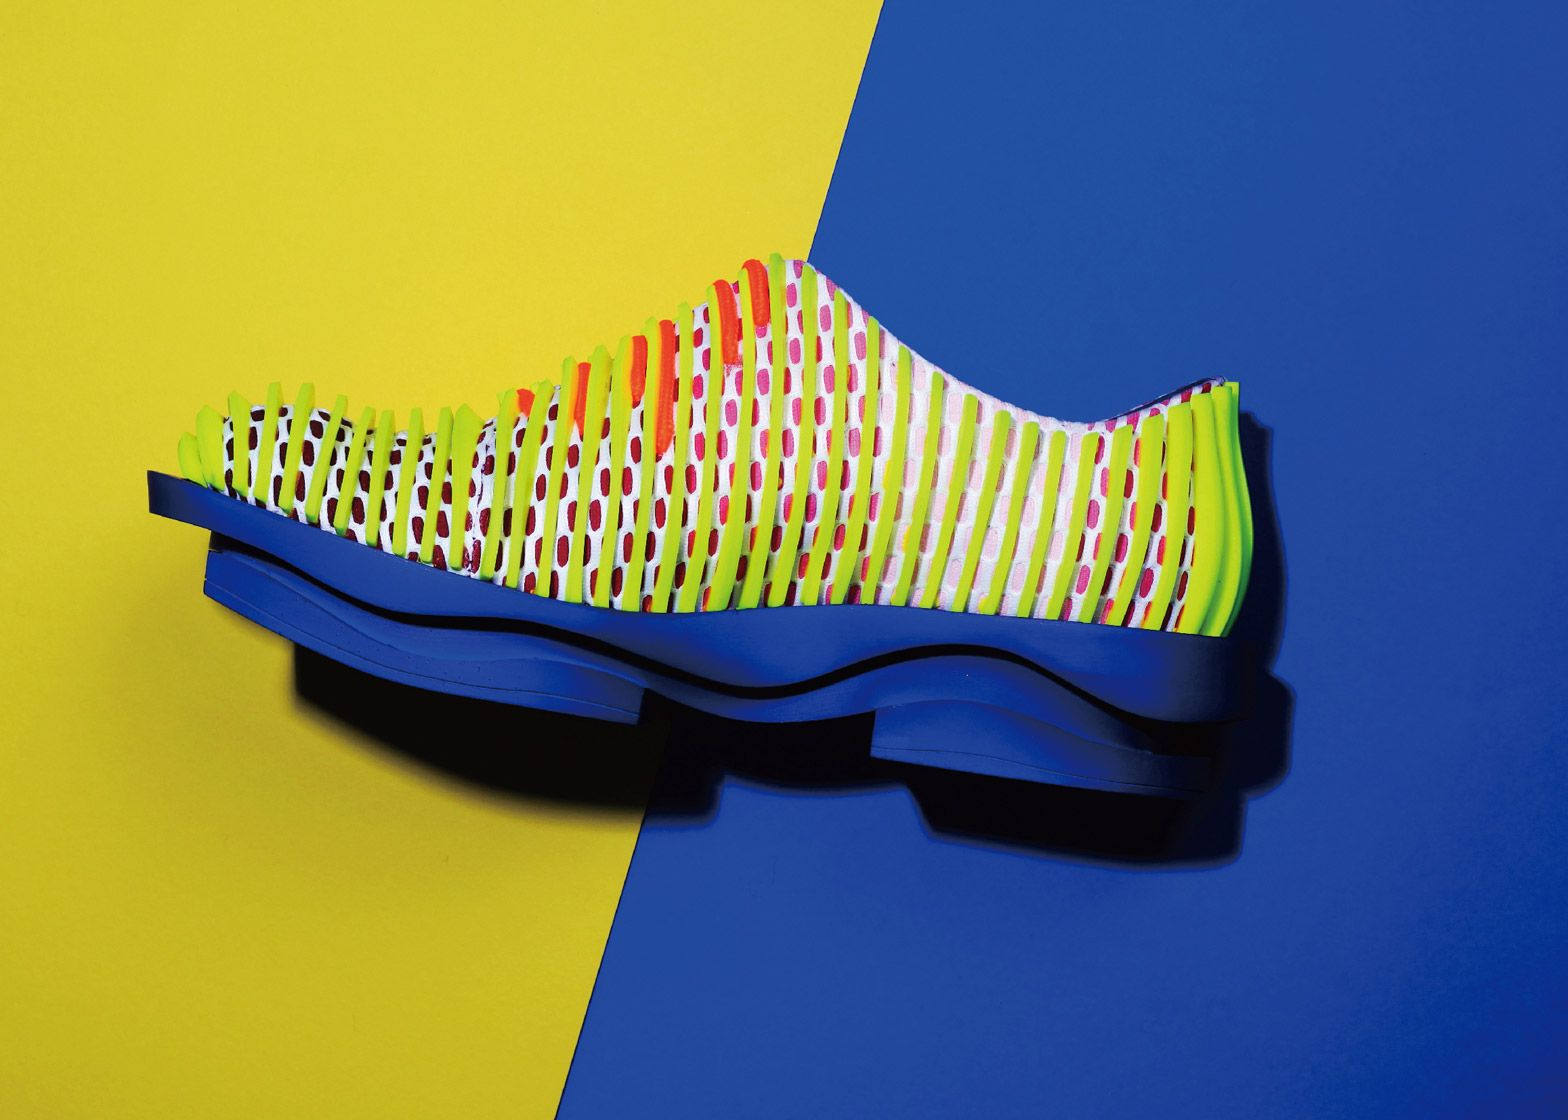 Chinese footwear designer Chengxu Tian's Layering Movement collection of footwear features raised, stripy patterns created by injection moulding